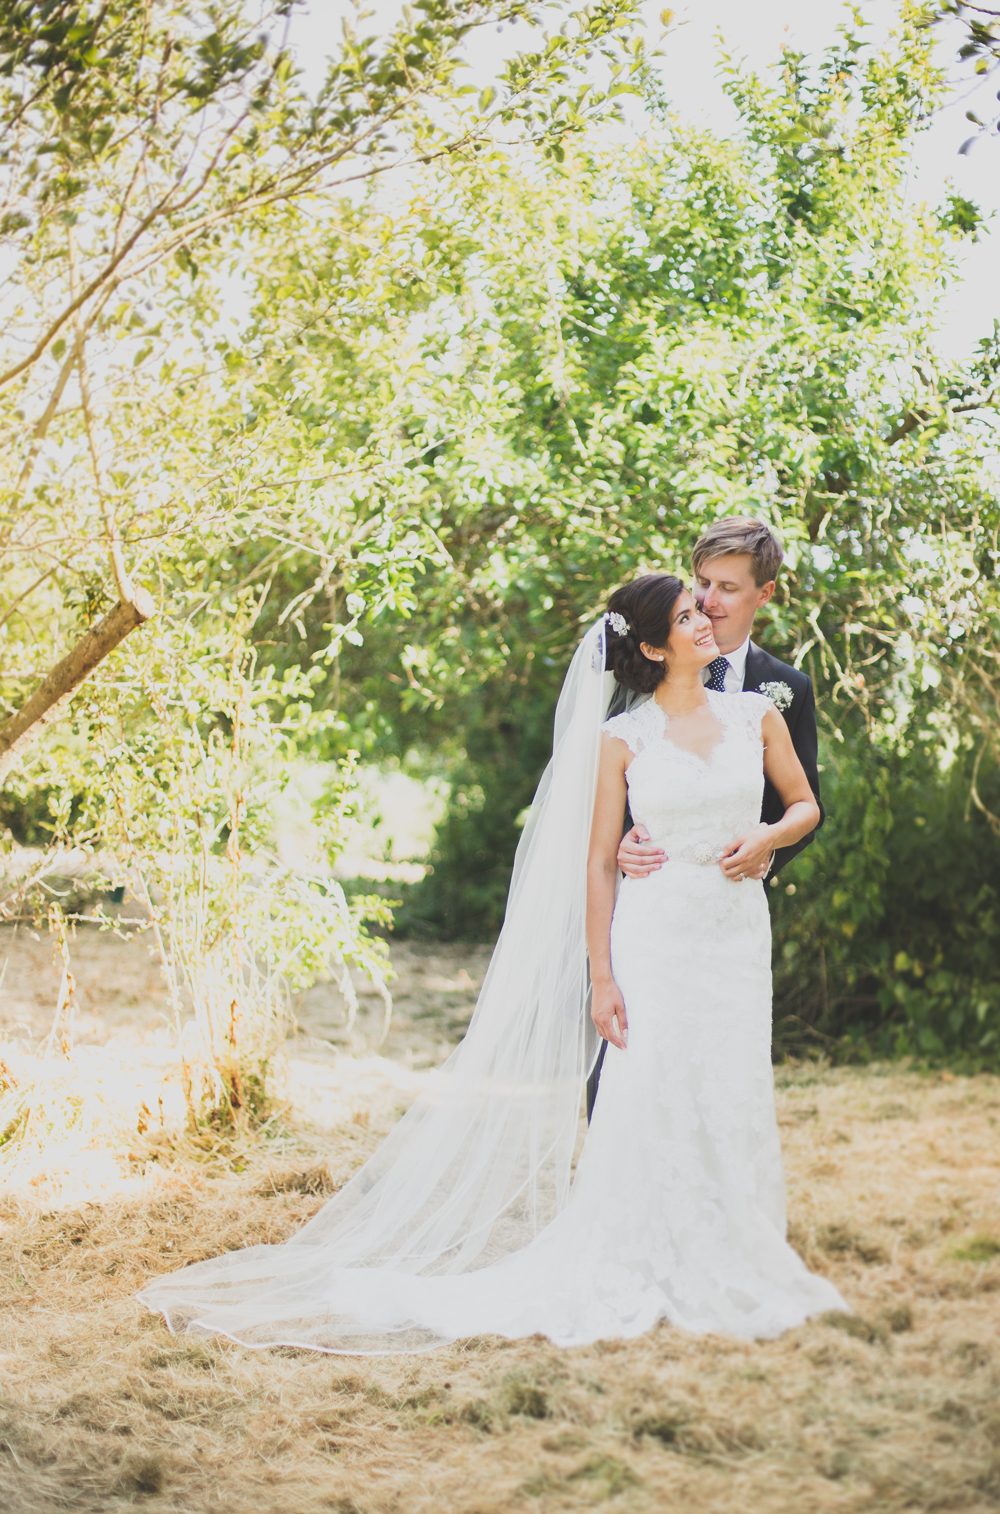 deineweddingstory-kerstin24